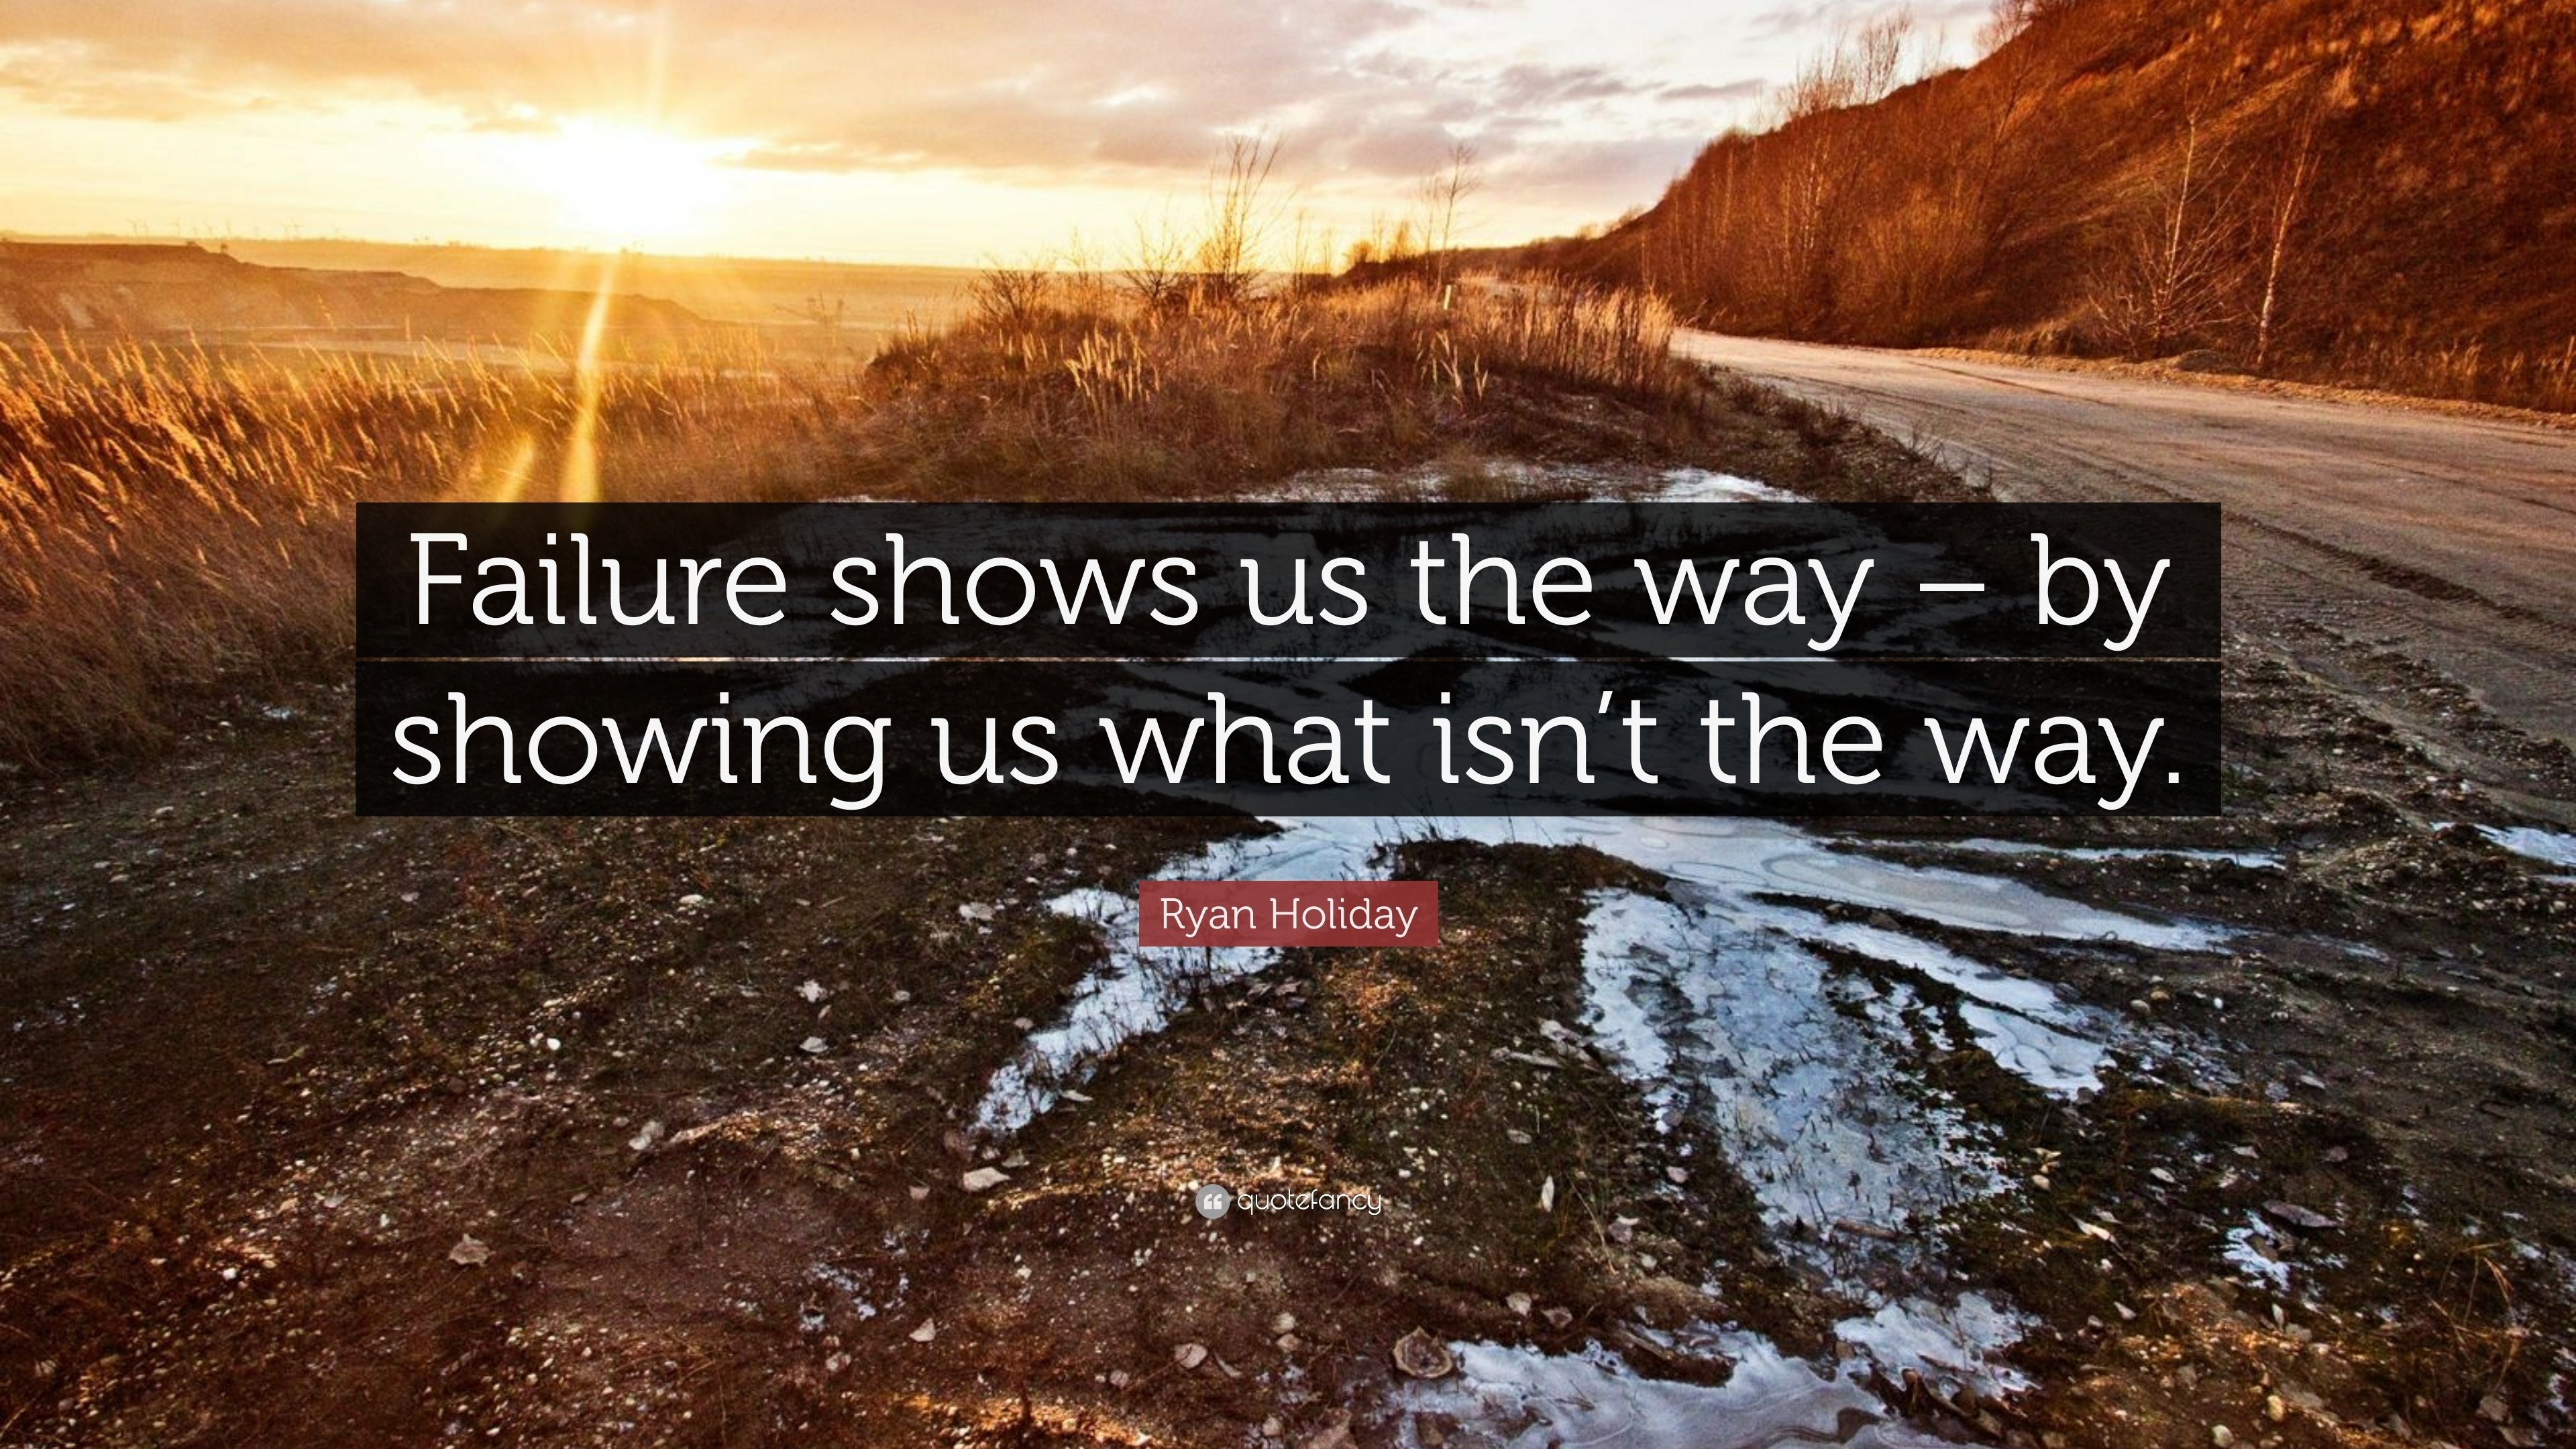 Failure shows us the way by showing us what isn't the Way.jpg